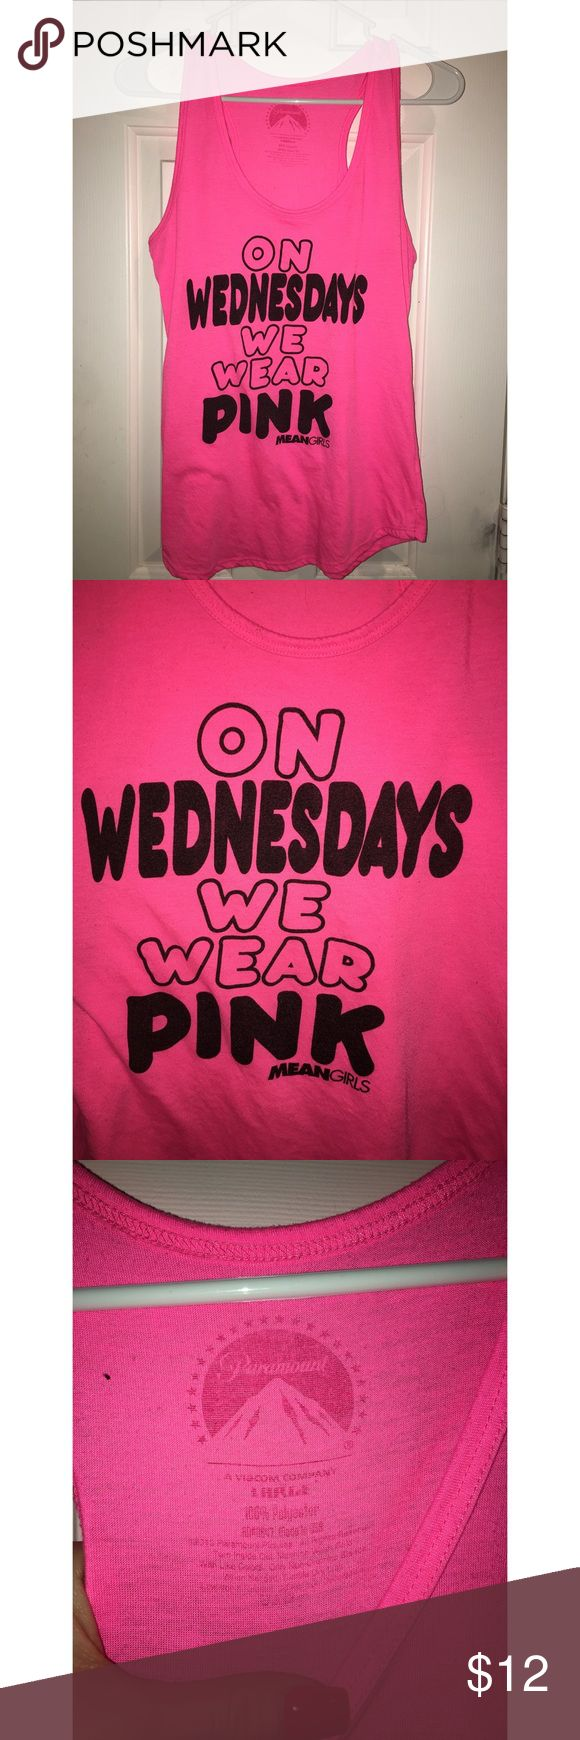 Mean girls neon pink tank top Mean girls quote shirt by paramount. Super cute and neon for themed parties Tops Tank Tops